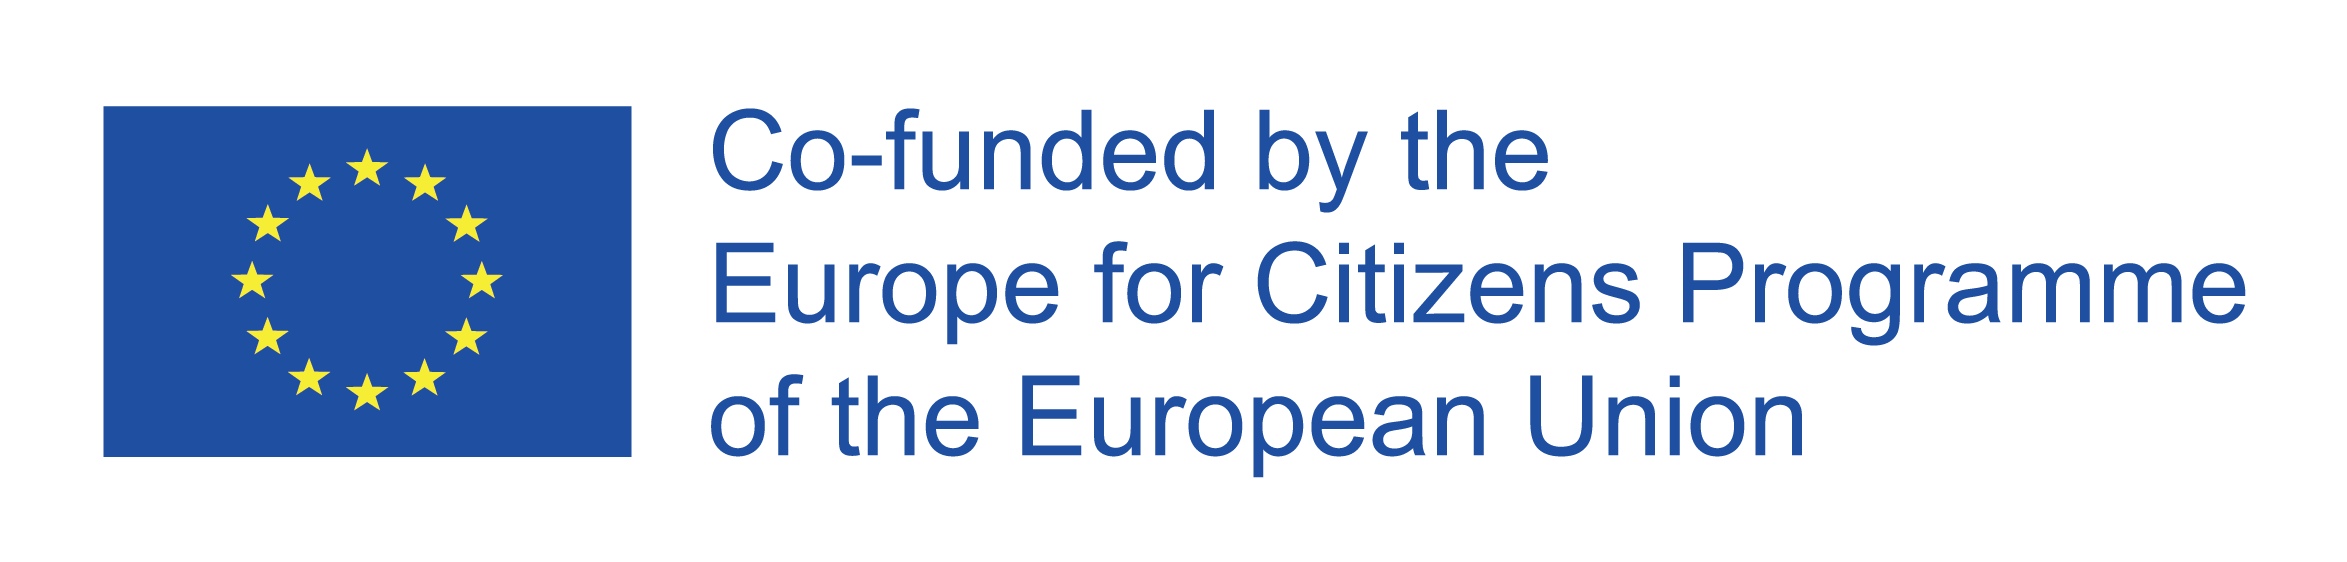 Europe for Citizens Programme logo